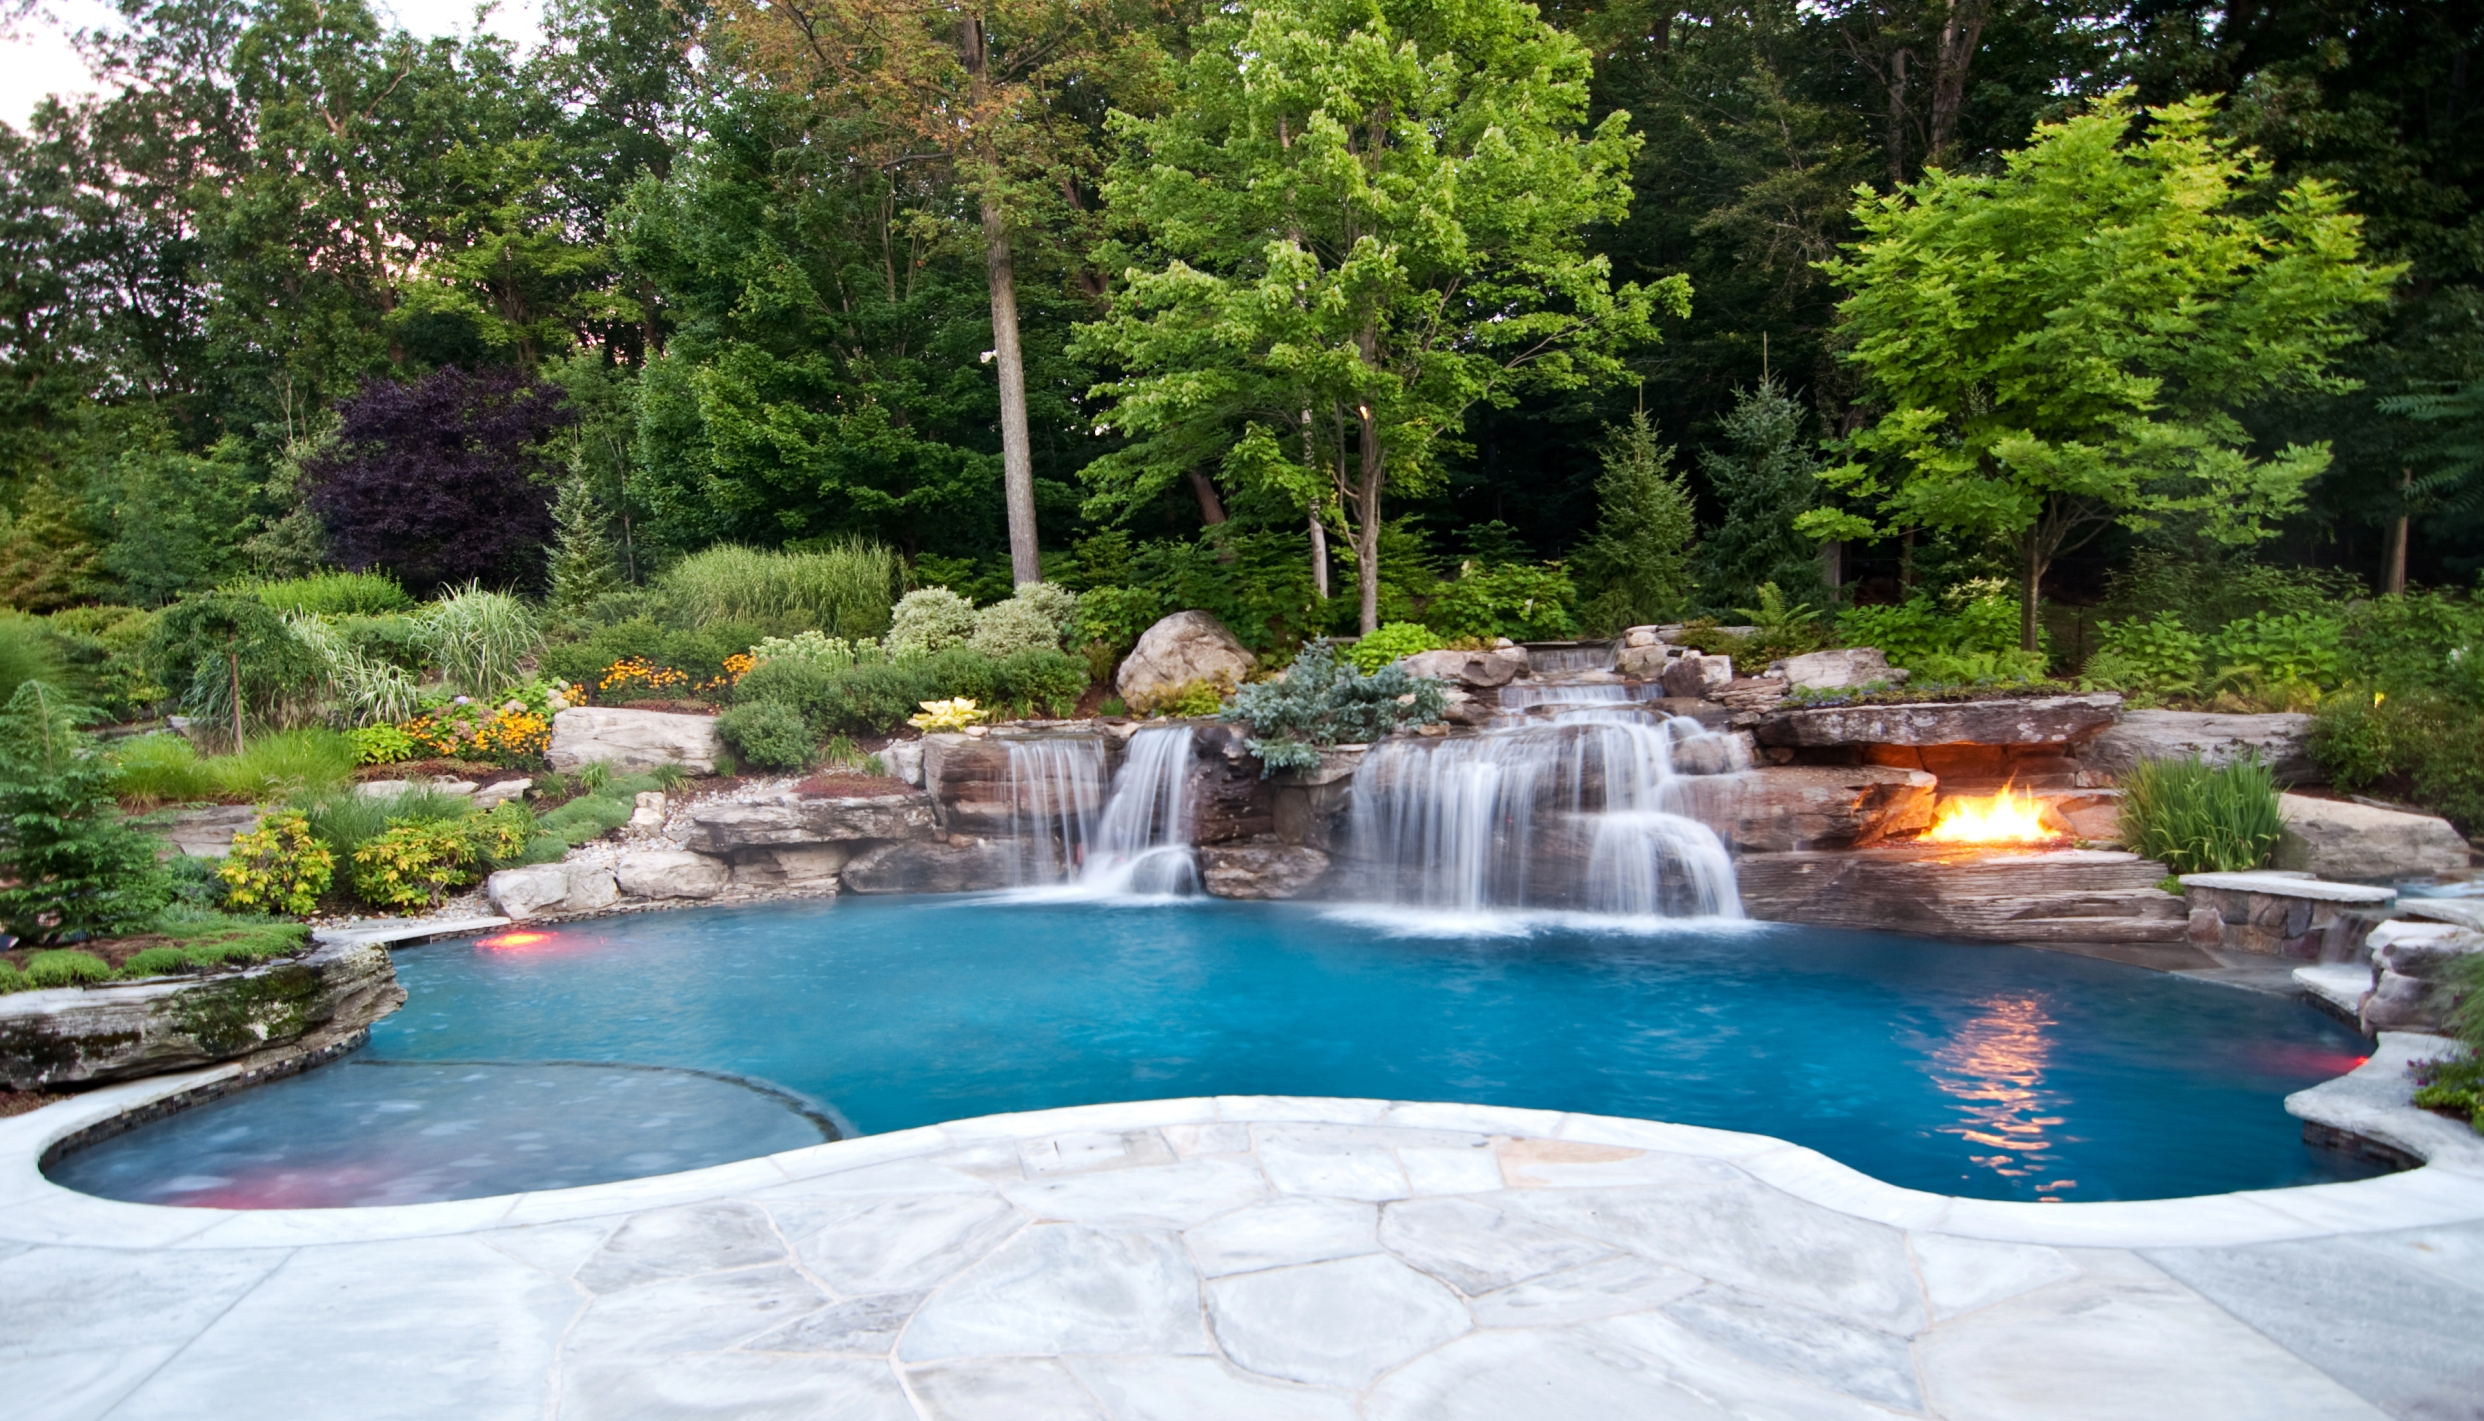 New jersey pool renovation company earns international for How to design a pool